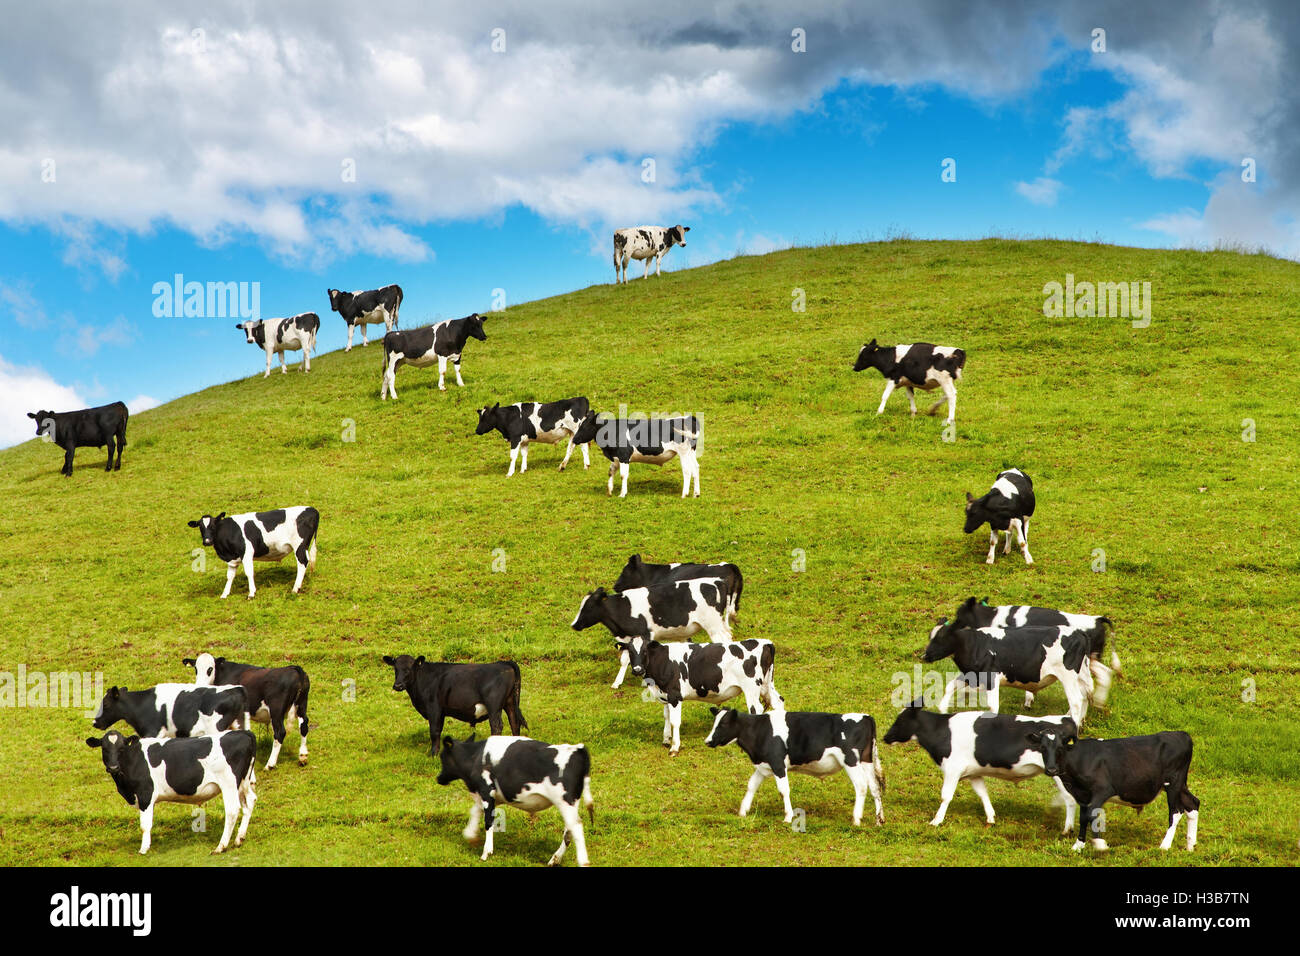 Grazing calves on green hill, New Zealand - Stock Image